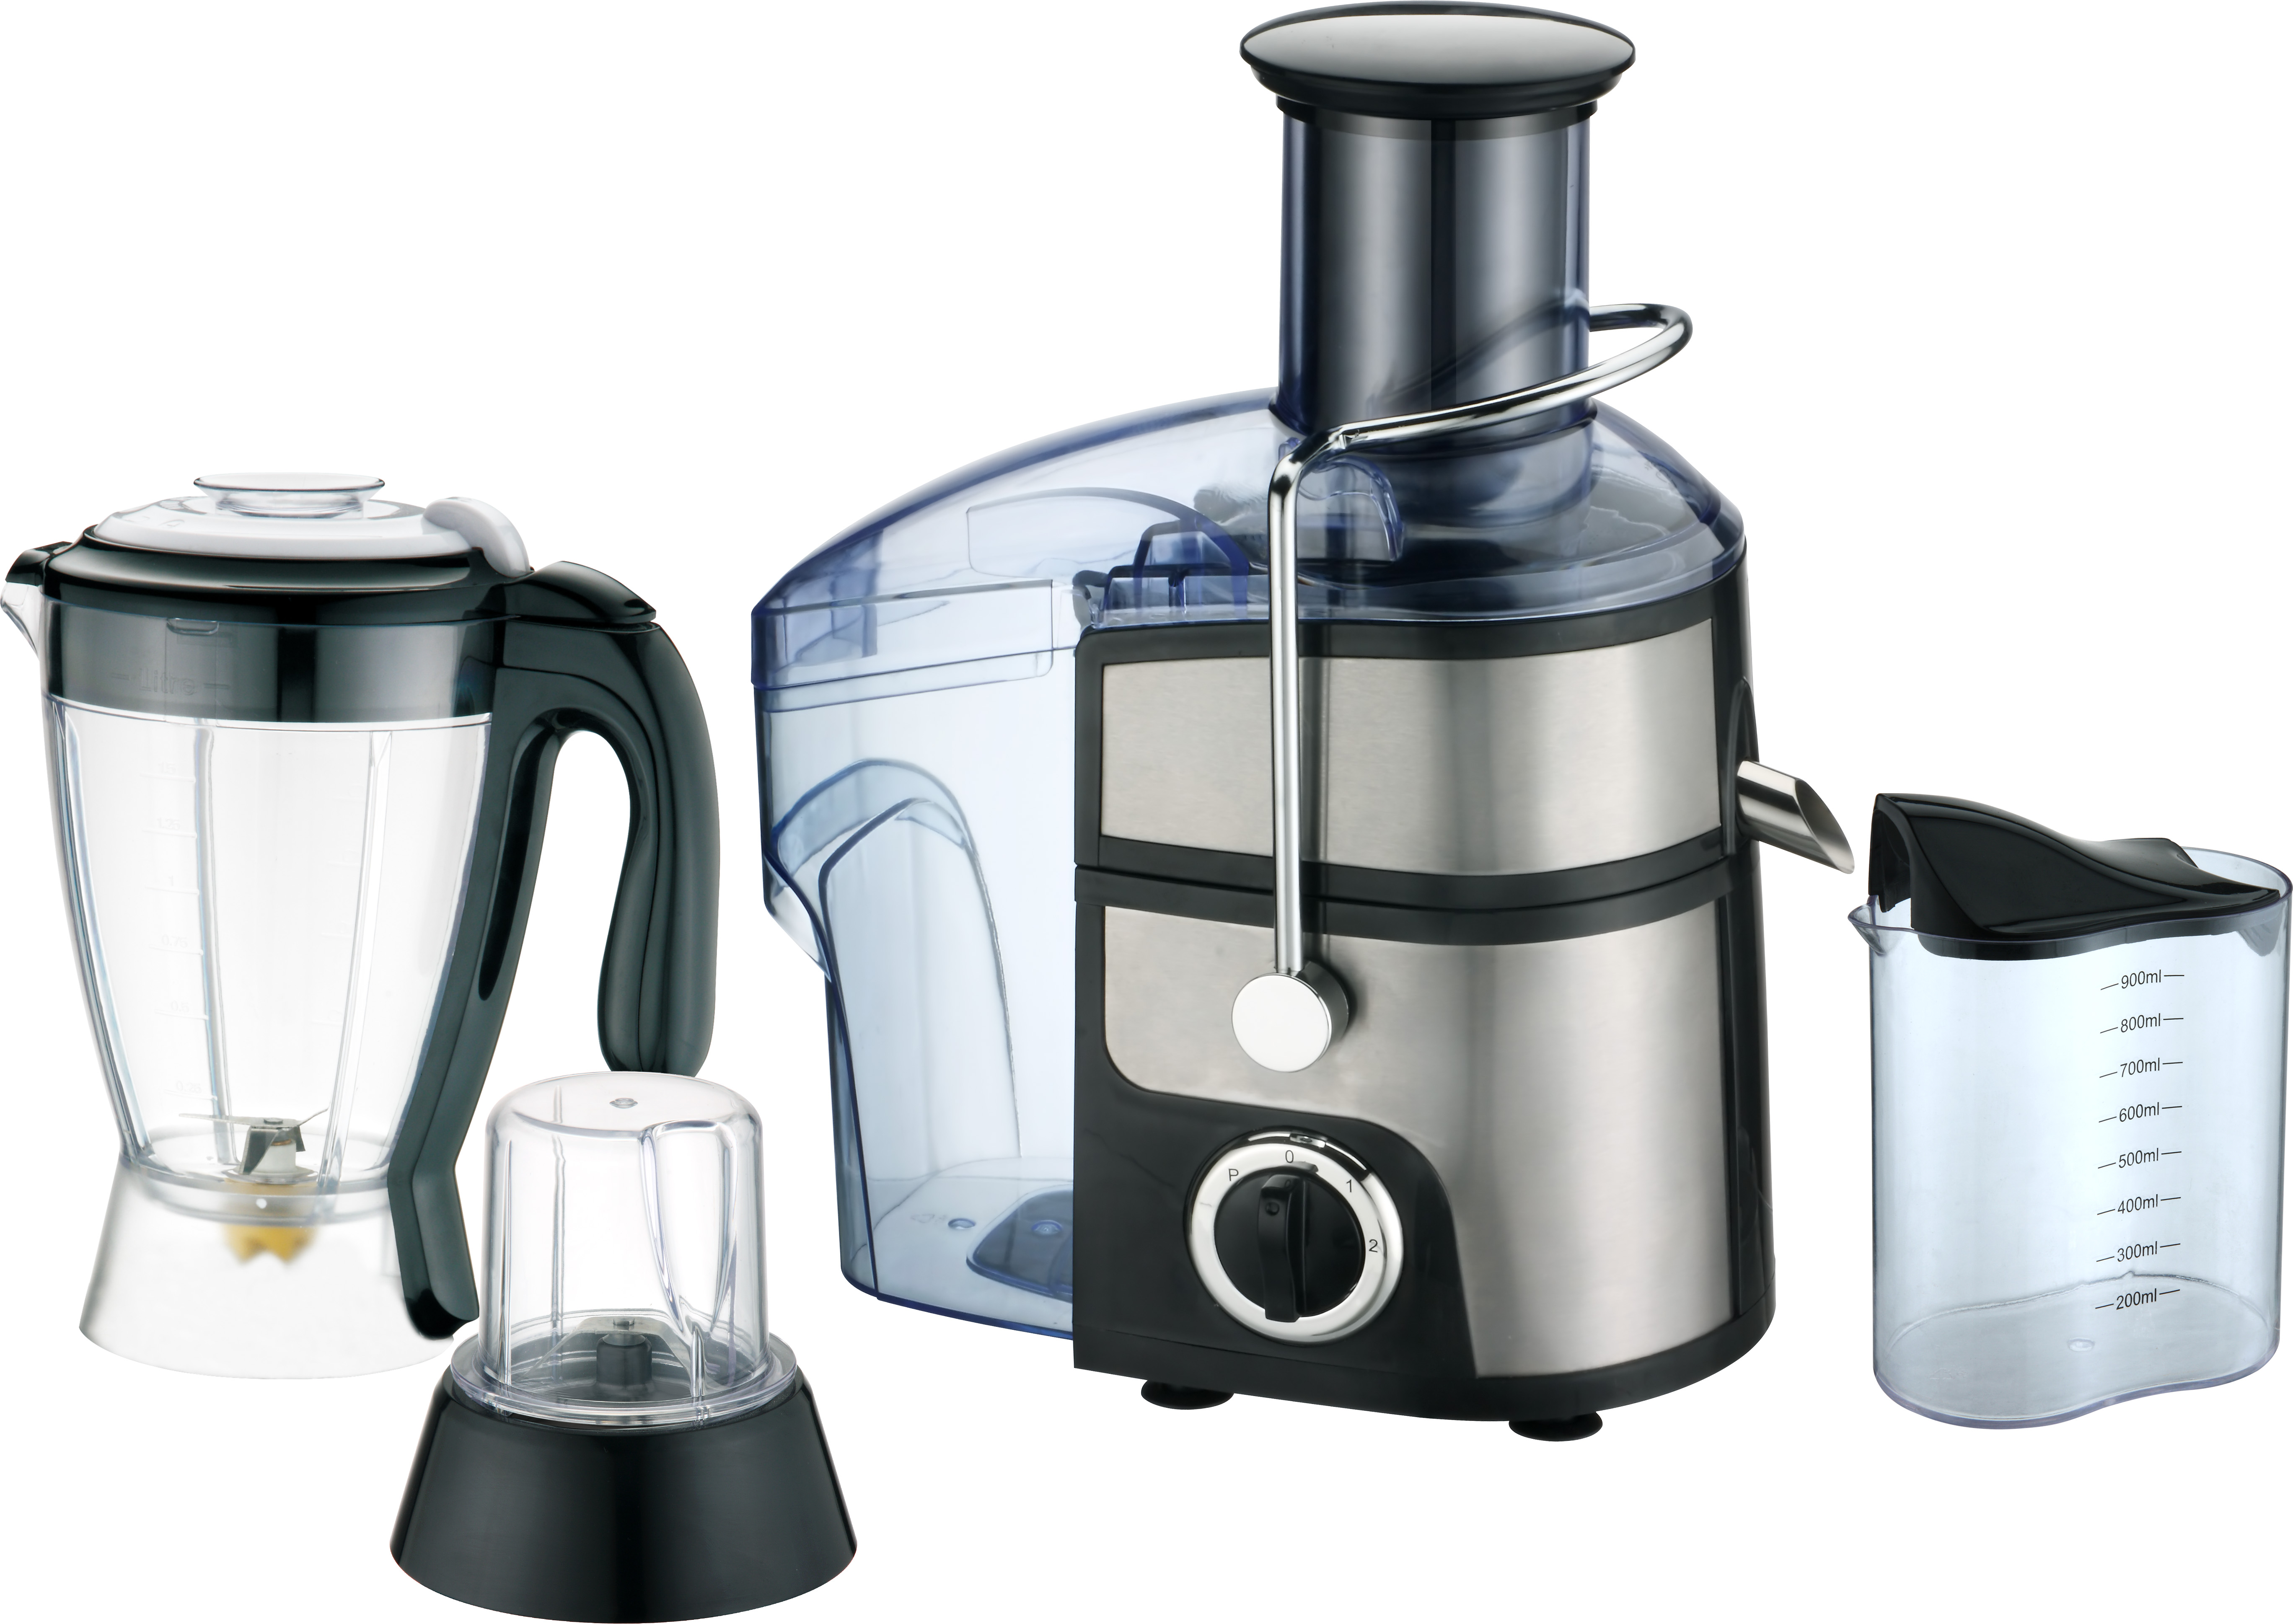 700W Power Fulp-free Juicer